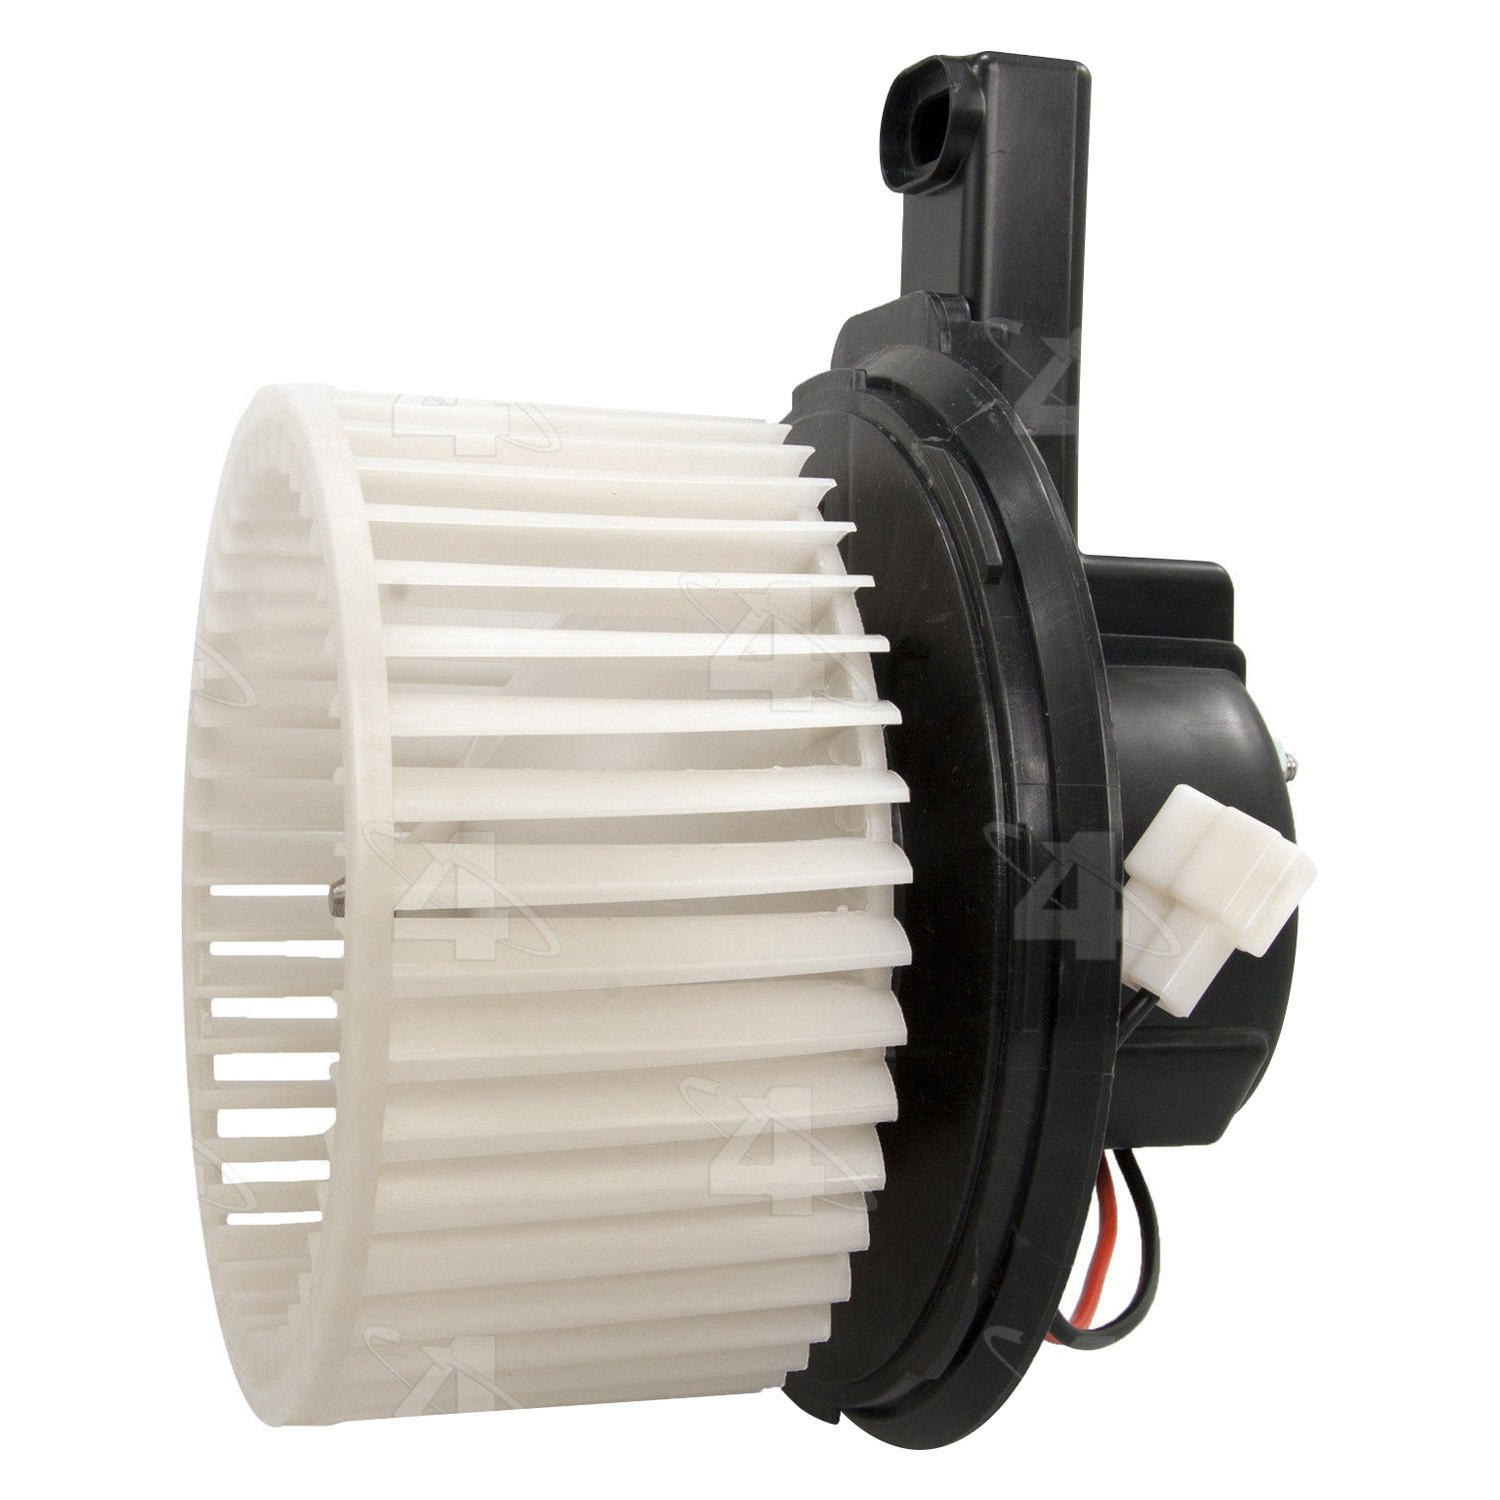 Four seasons ford expedition 2007 2008 hvac blower motor for Furnace blower motor price